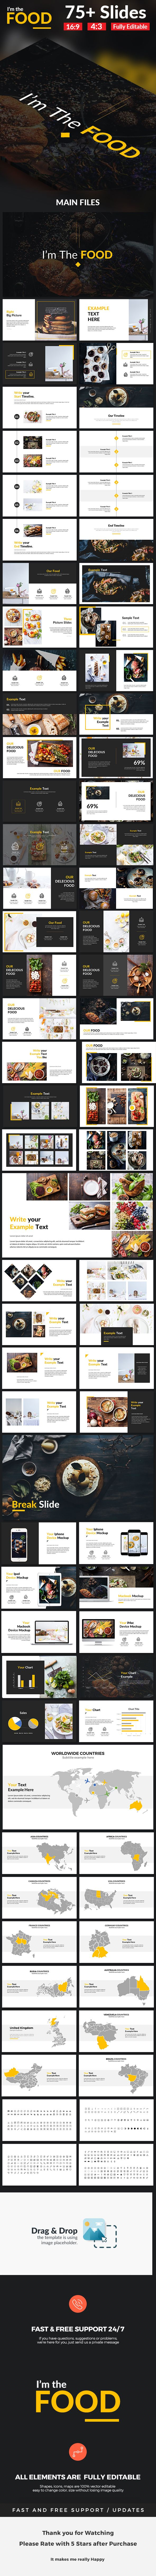 I'm the Food Powerpoint Template. Download here: https://graphicriver.net/item/im-the-food-powerpoint-template/16931161?ref=ksioks